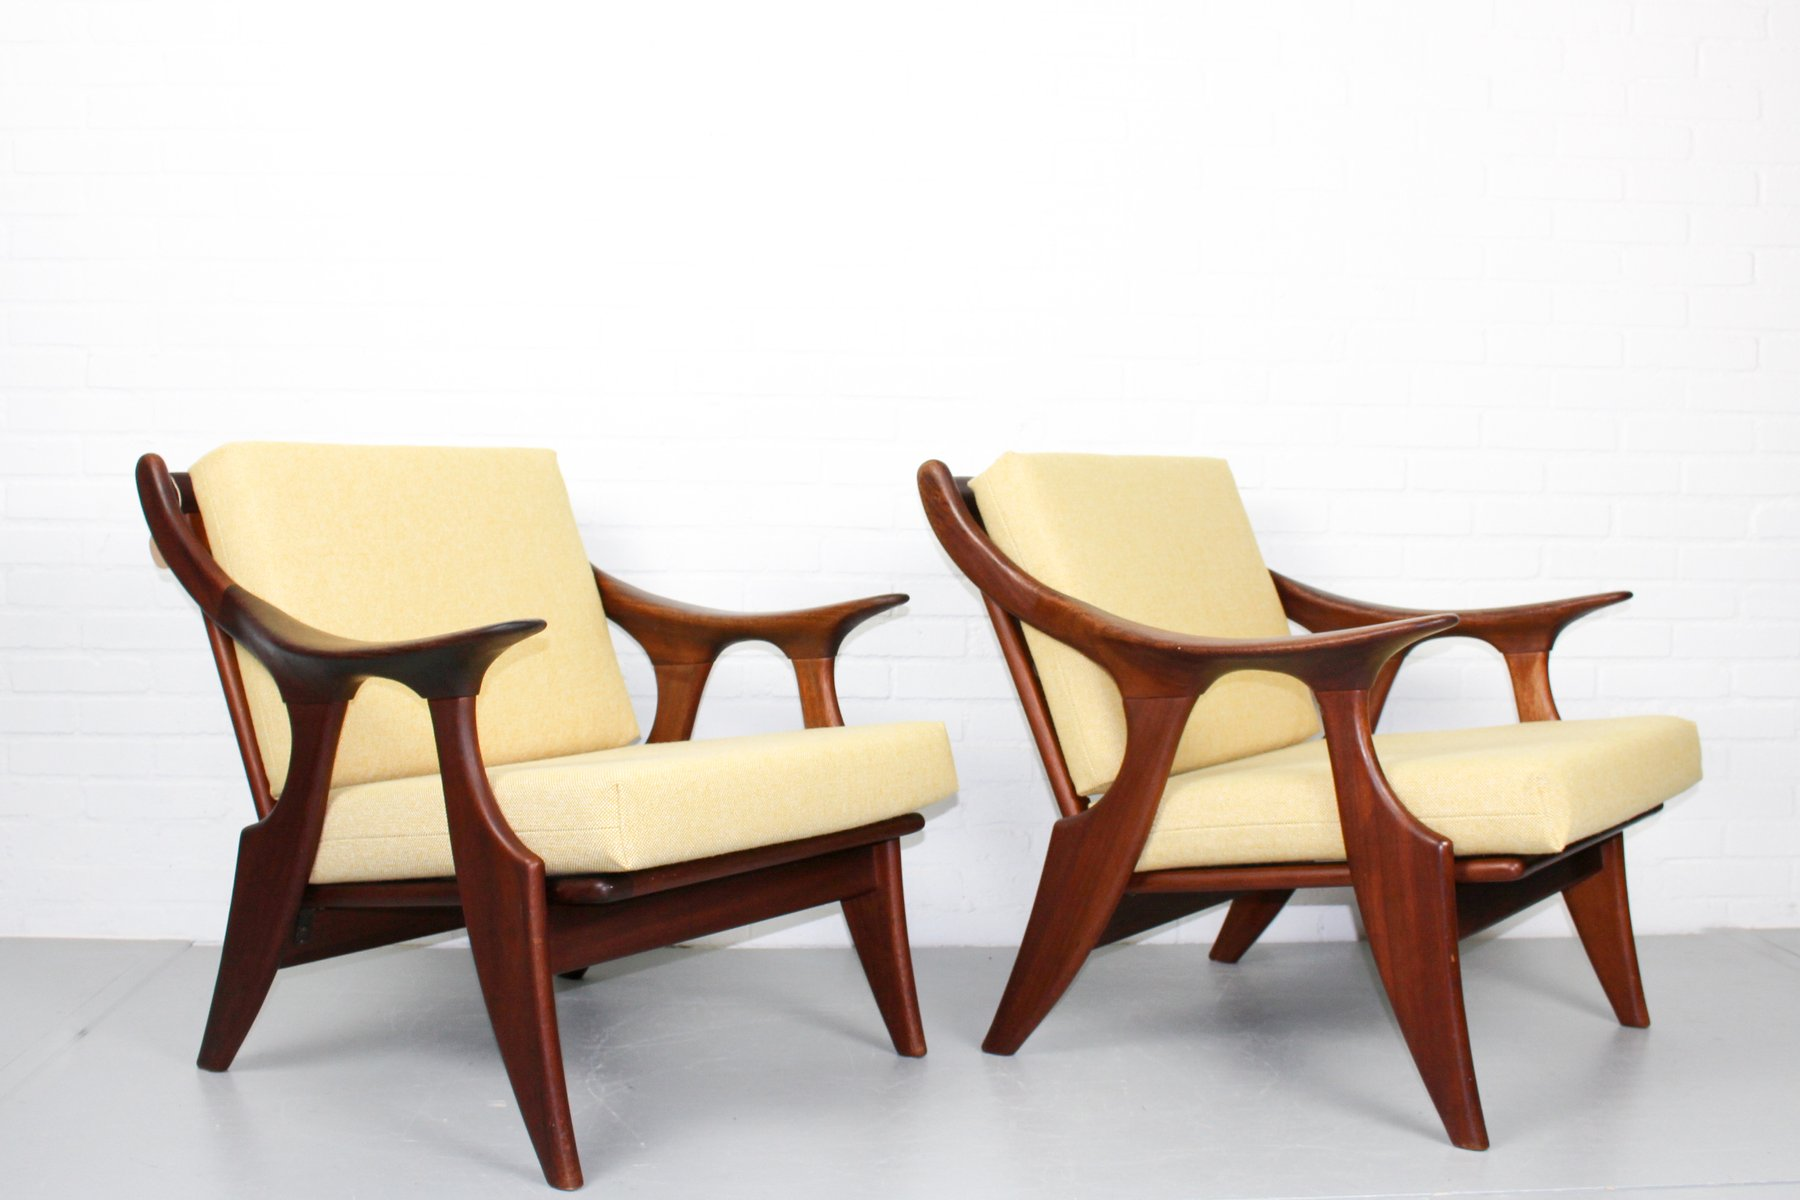 Small Lounge Chairs by De Ster Gelderland 1950s Set of 2 for